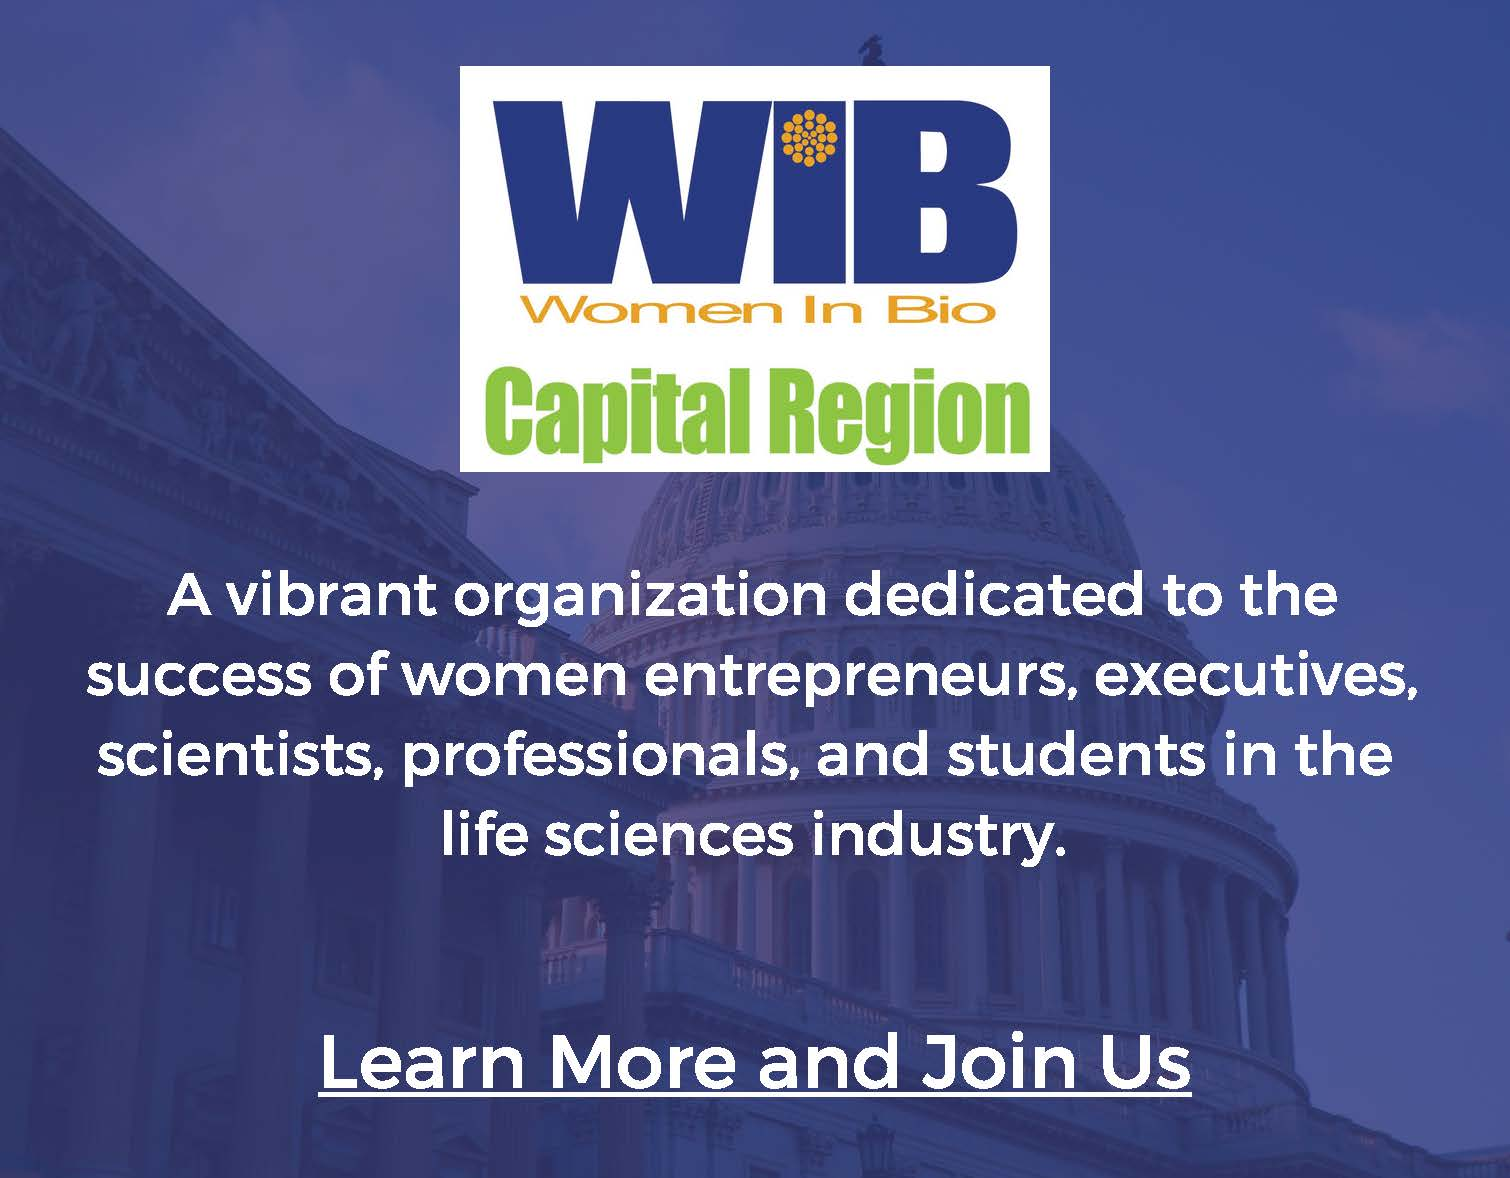 Women in Bio - Capital Region